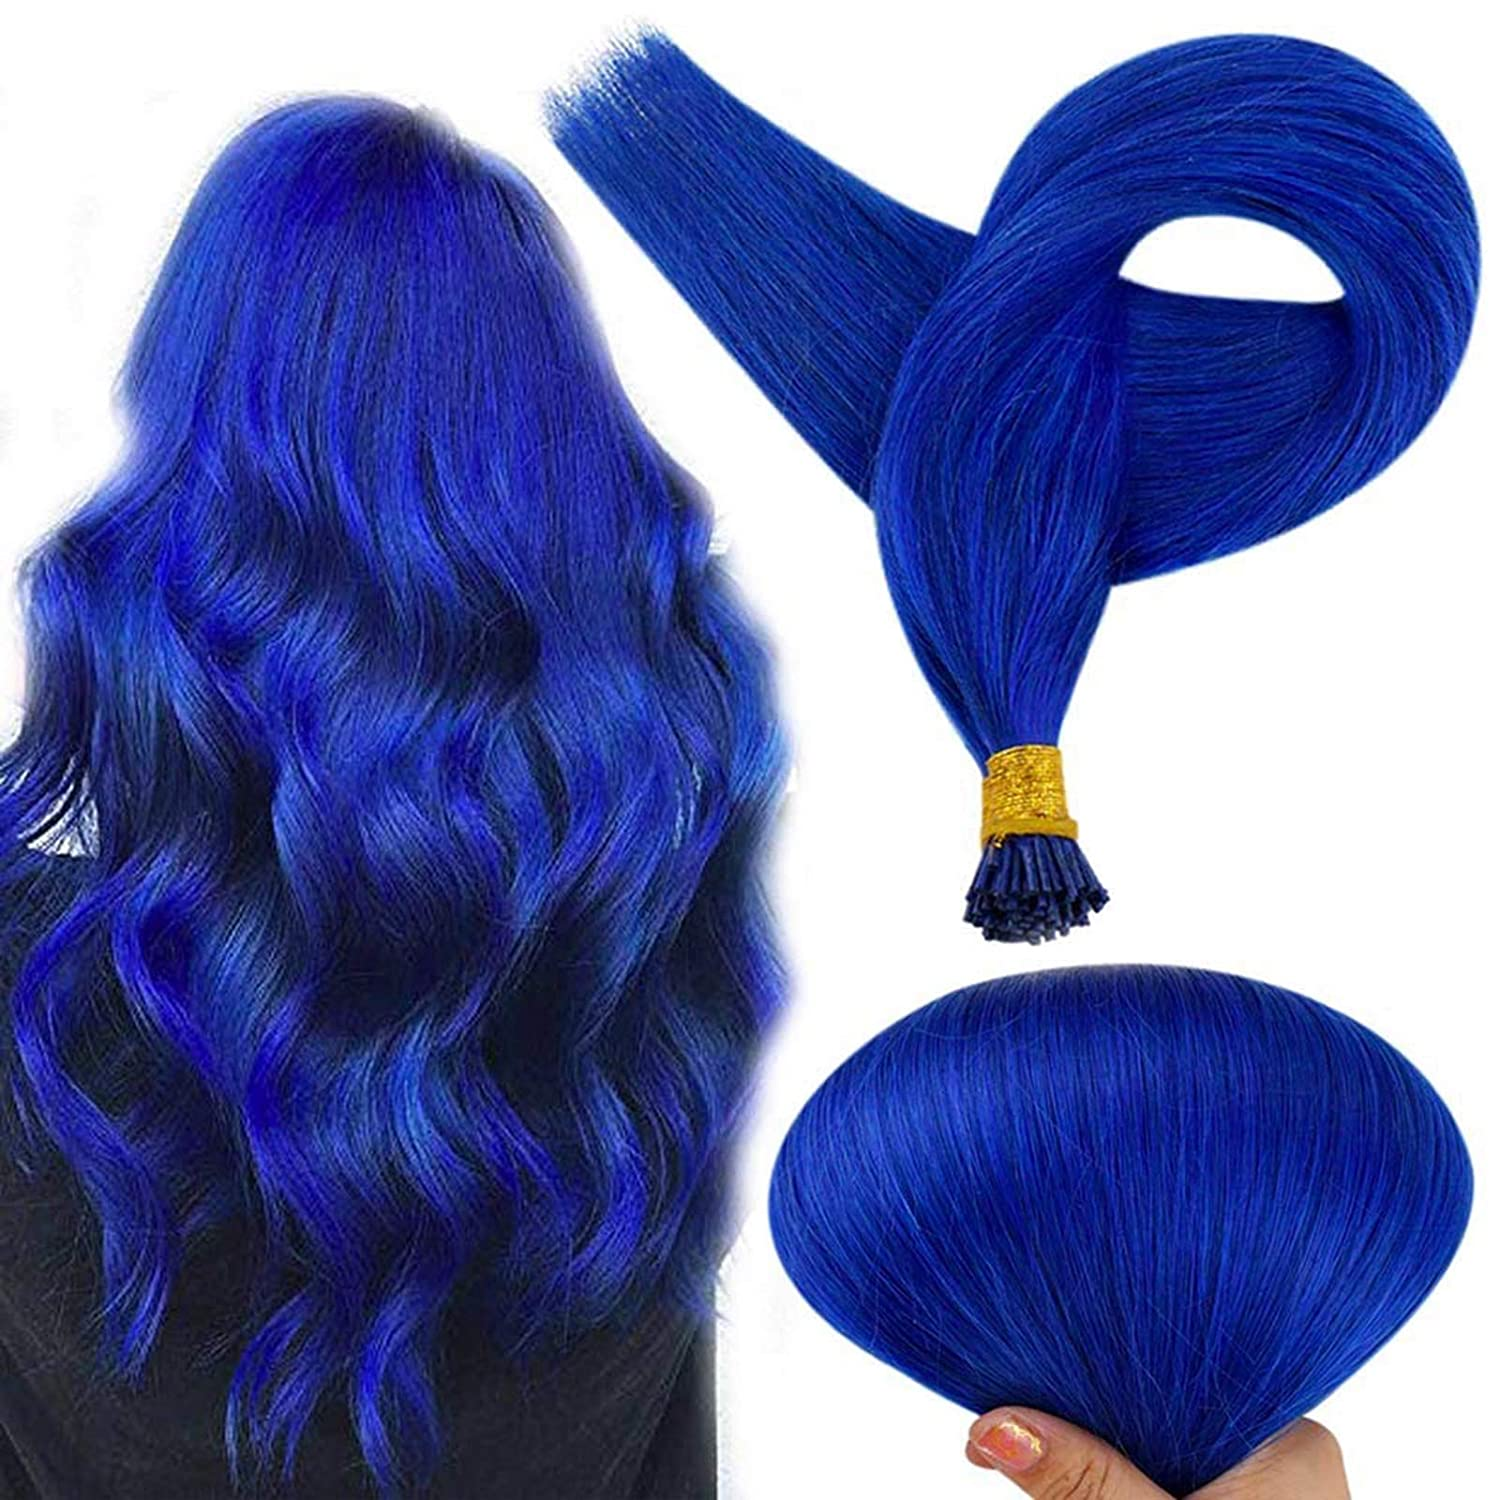 Full Shine Keratin Hair Extensions I Tip Hair Extensions 18 Inch Blue Remy I Tip Reheating Micro Beads Hair Extensions 40 Gram 50 Strands Fusion Remy Human Hair Extensions